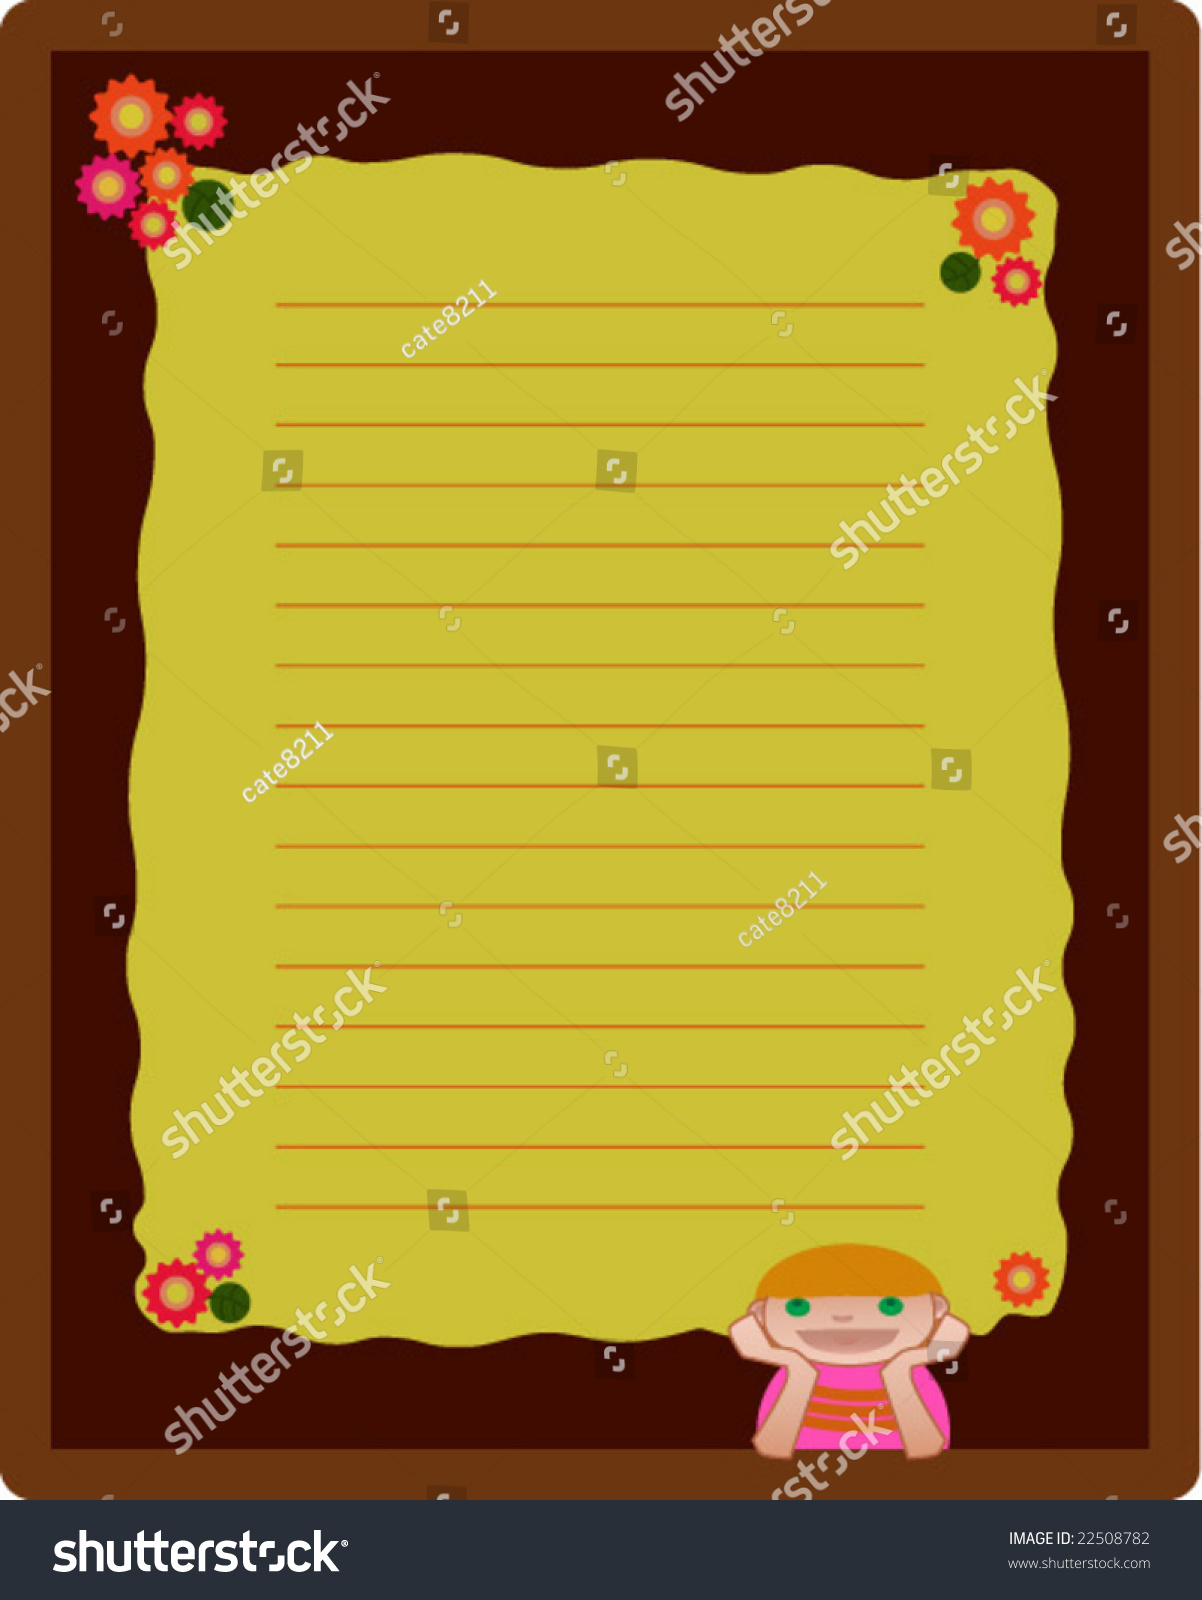 How to design scrapbook layouts - Notebook Or Scrapbook Page Layout Design With Girl And Flowers